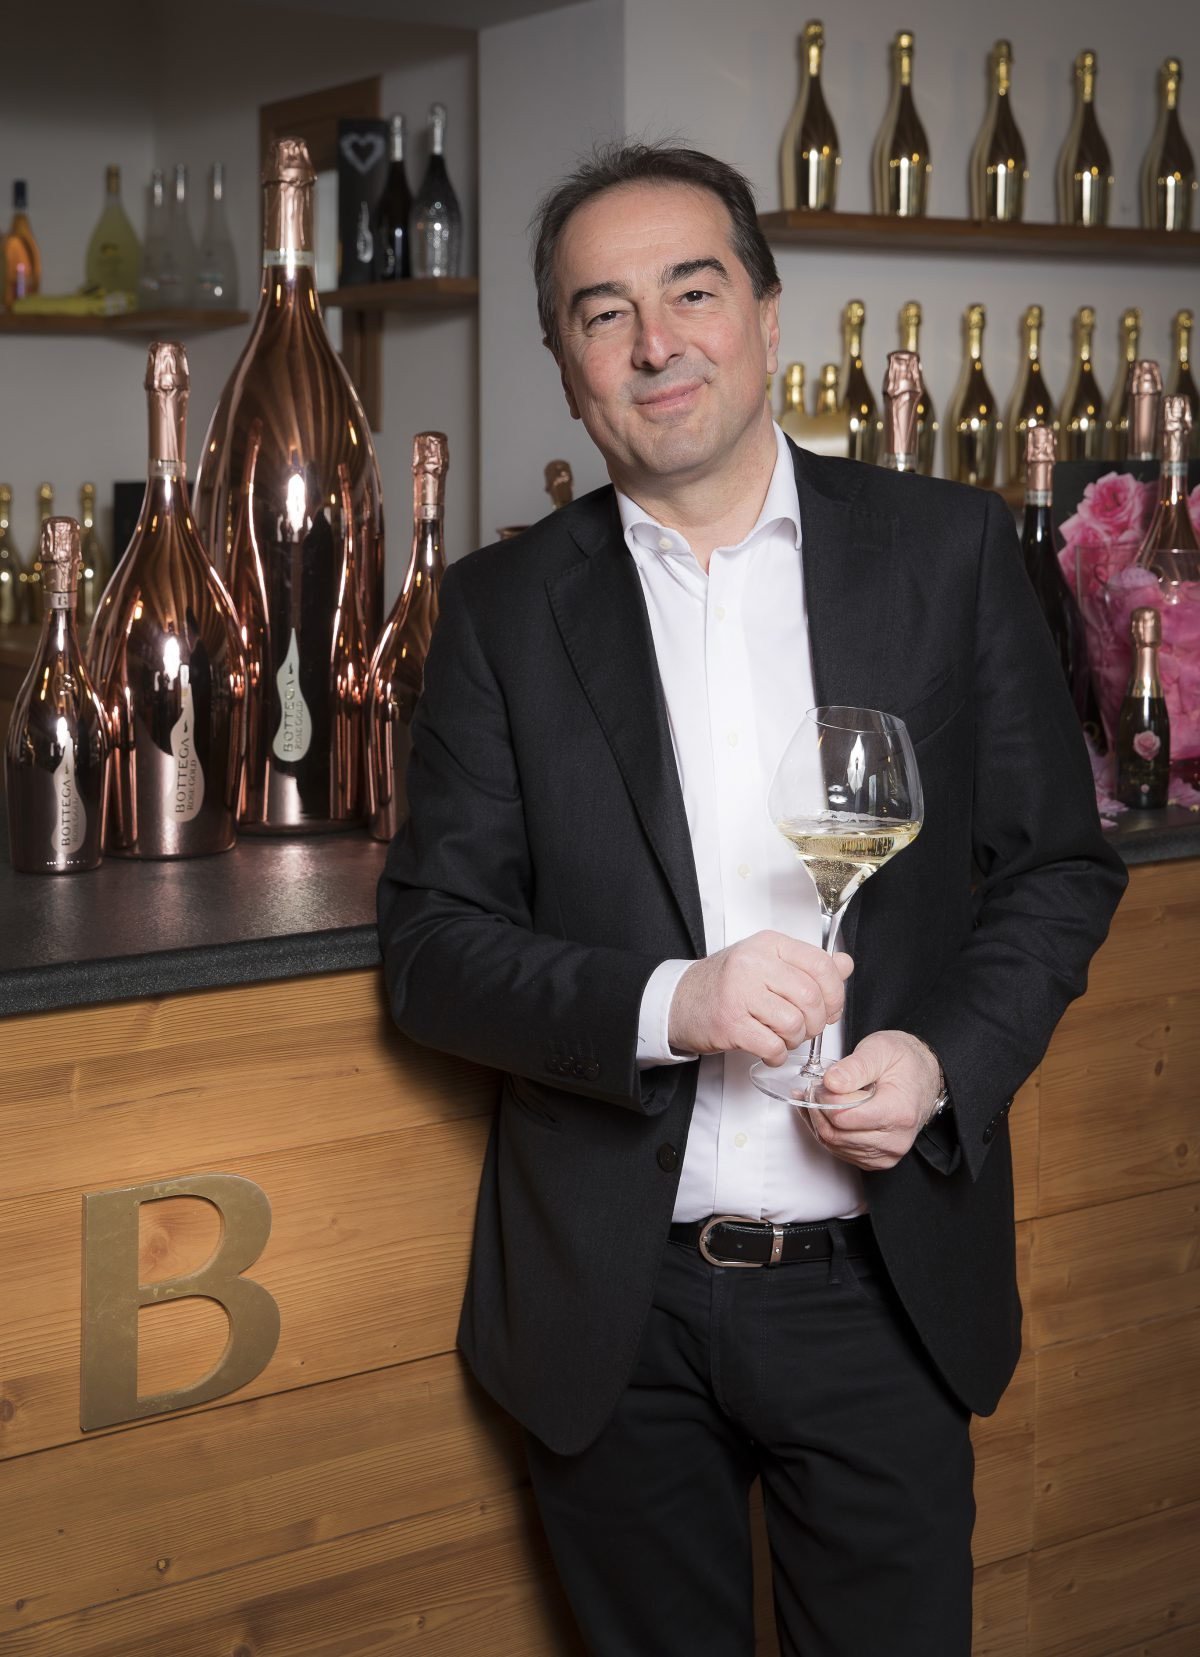 SANDRO BOTTEGA AWARDED RIEDEL WINE MAKER OF THE YEAR IN TORONTO